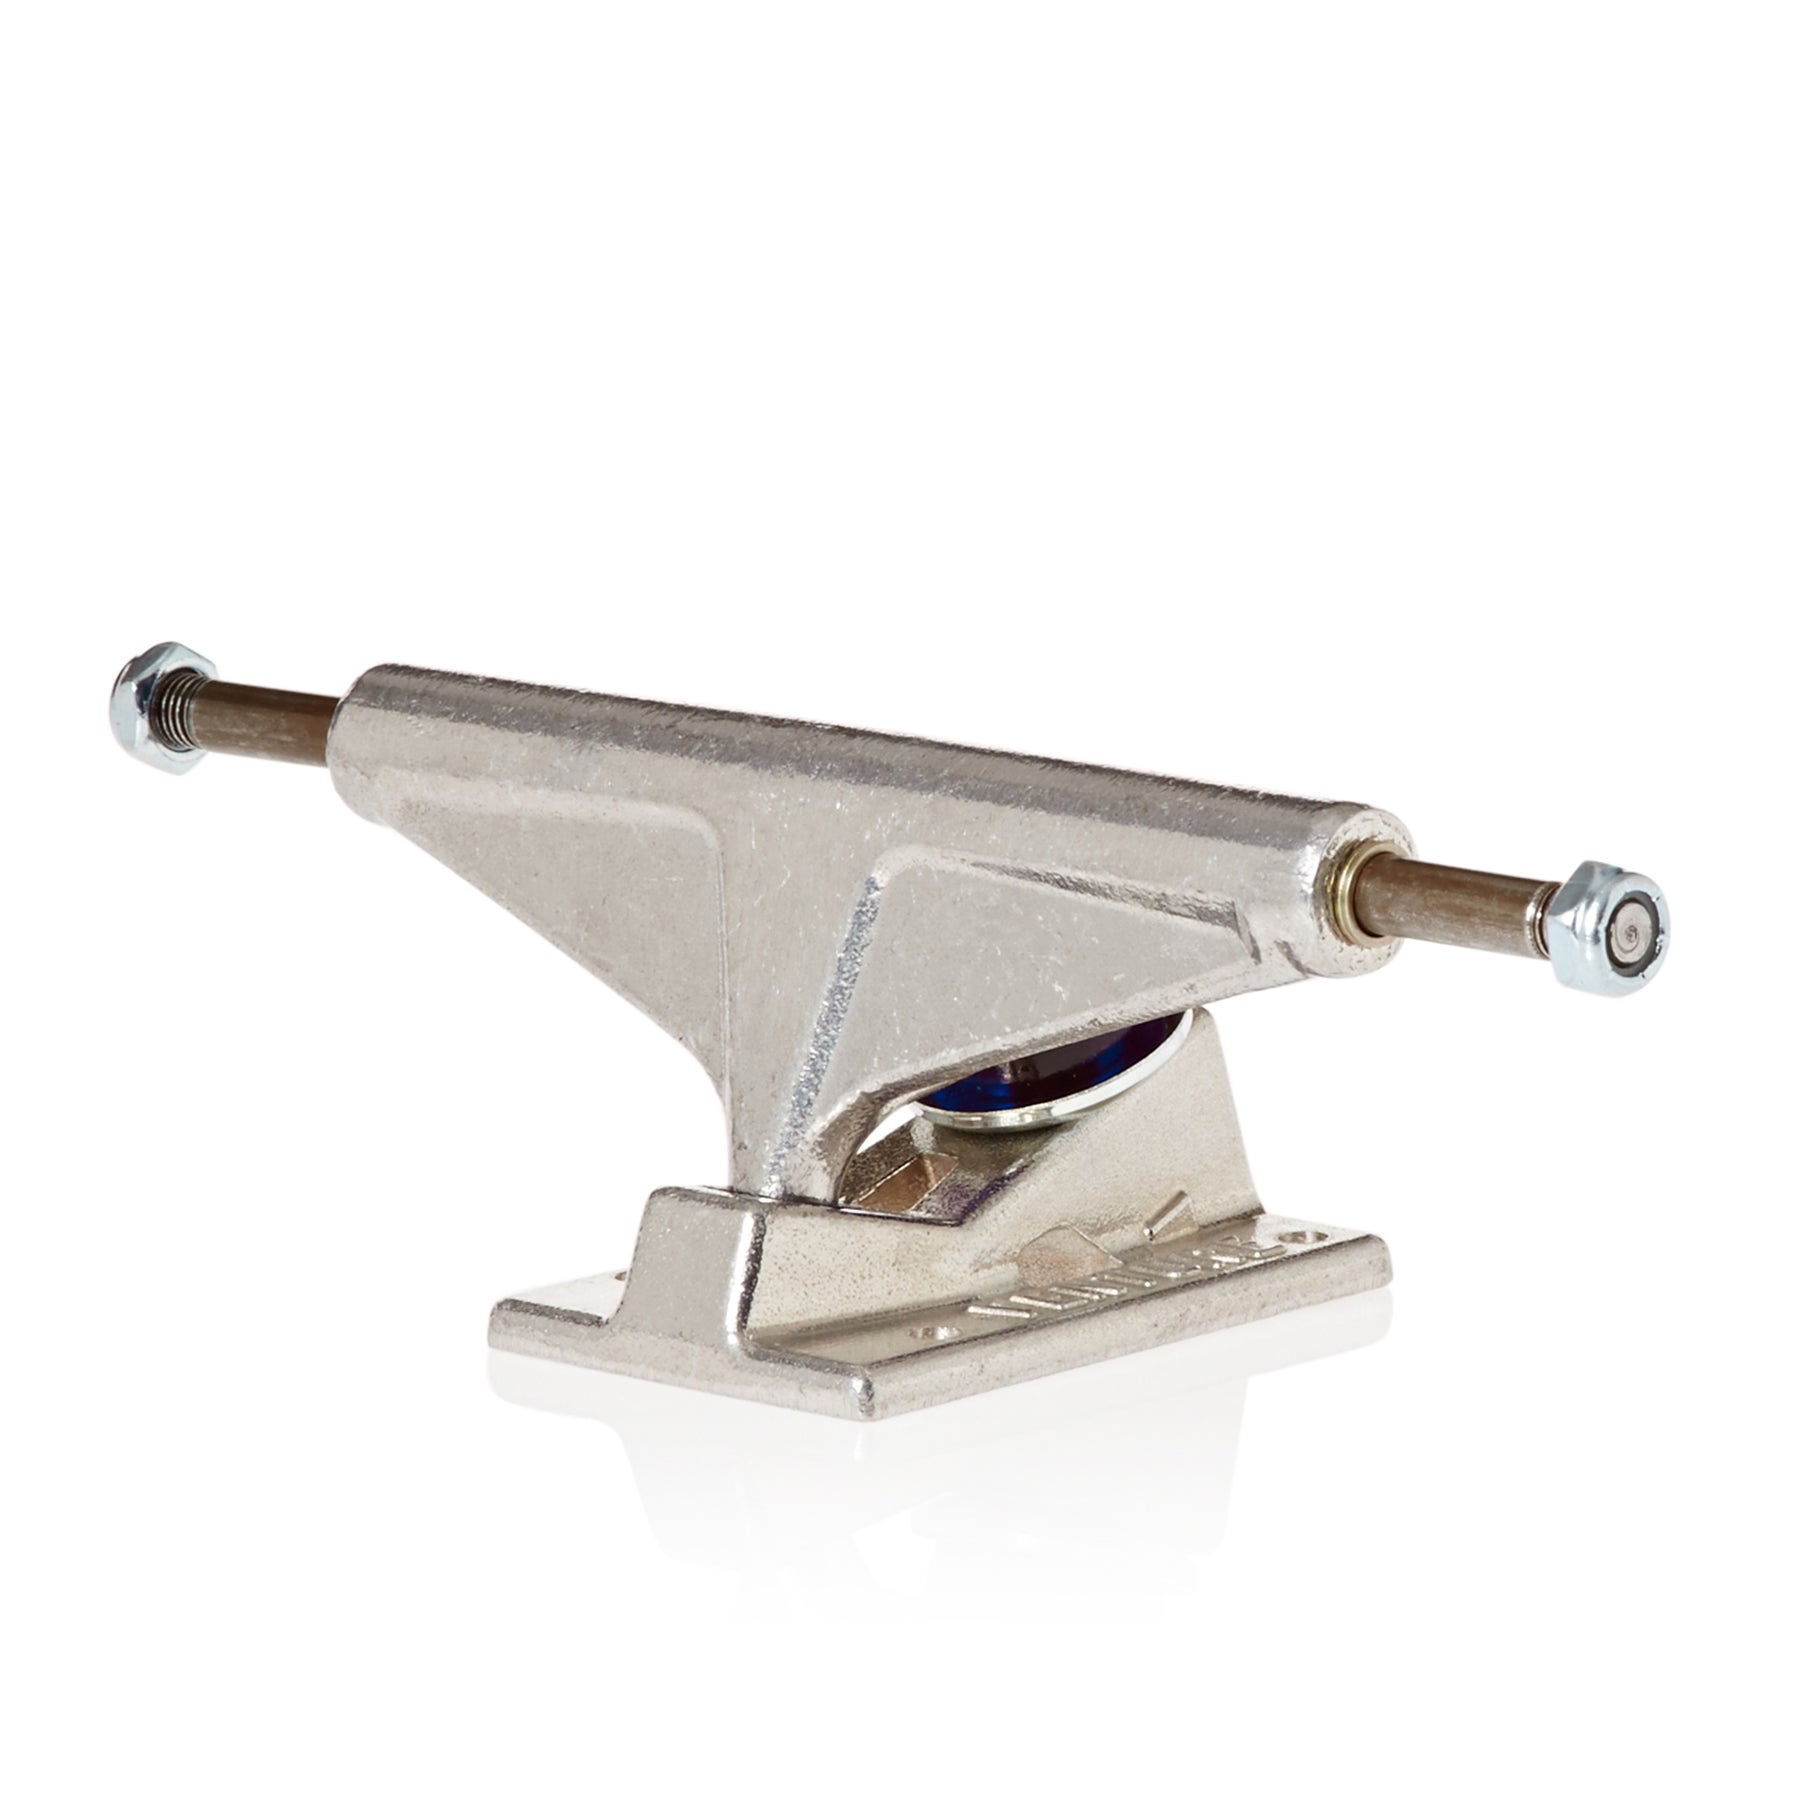 Venture 5.25 High Skateboard Truck - All Polished